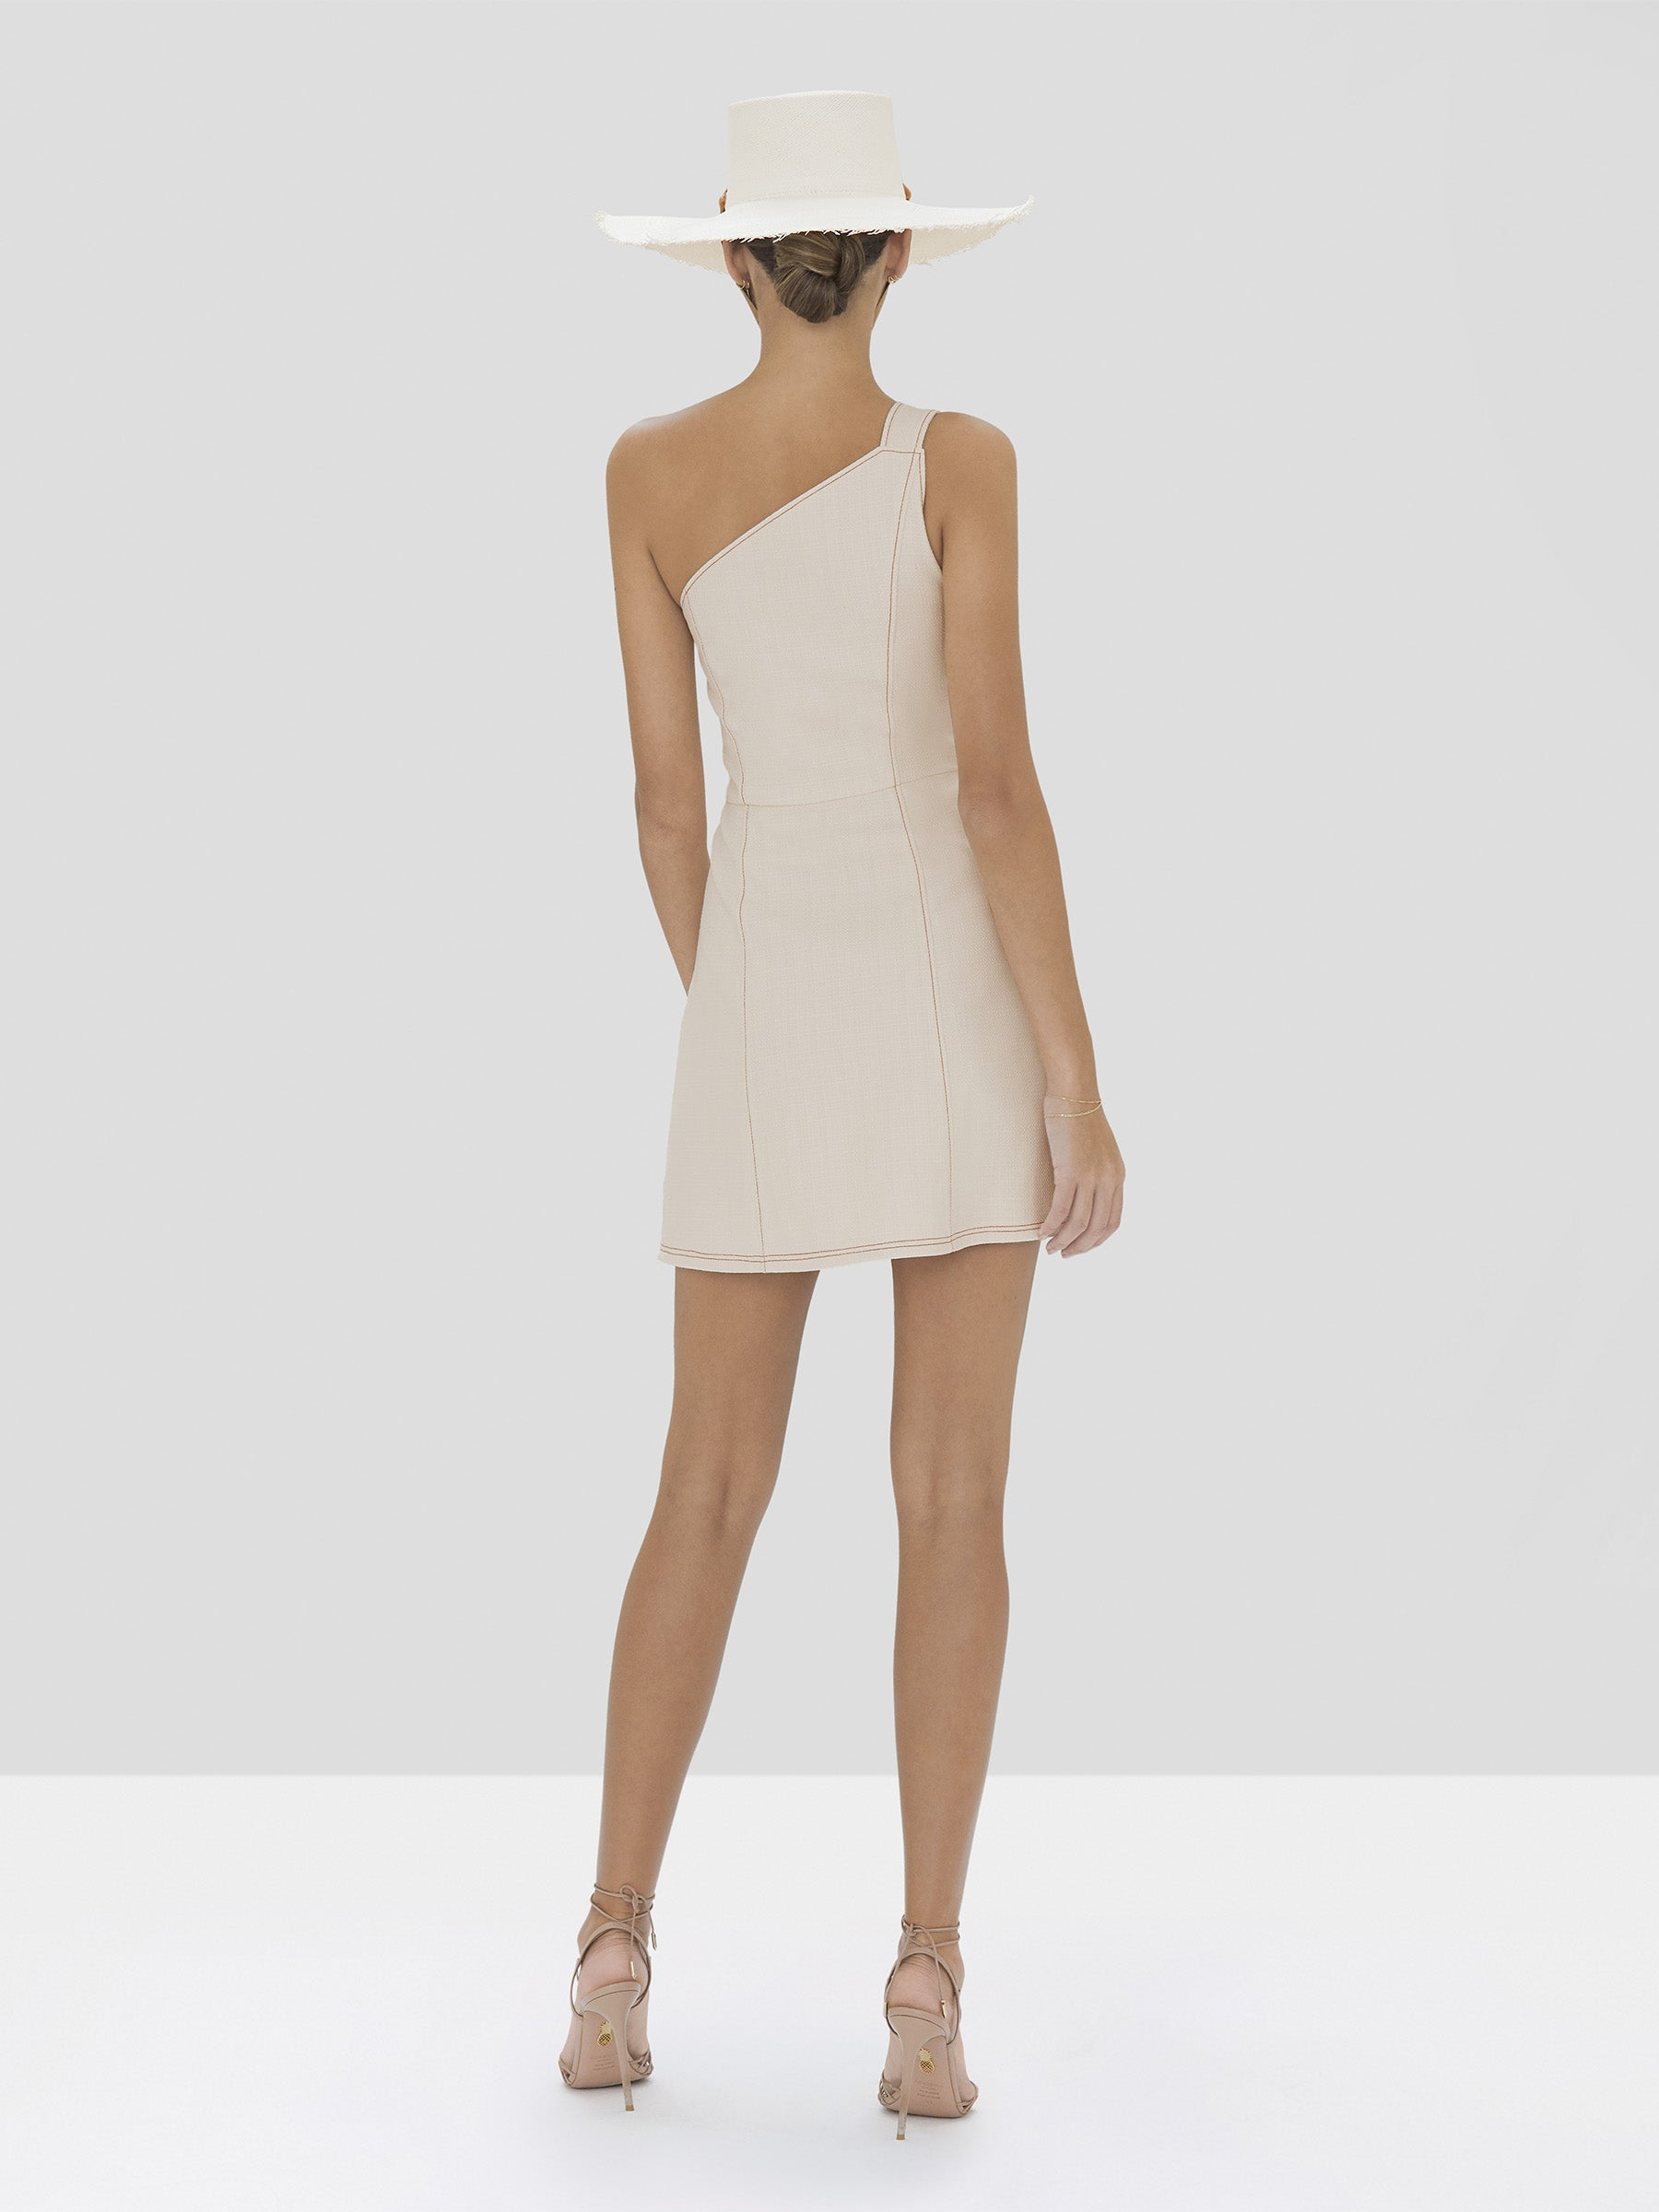 Alexis Alonsa Dress in Ivory from Spring Summer 2020 Collection - Rear View